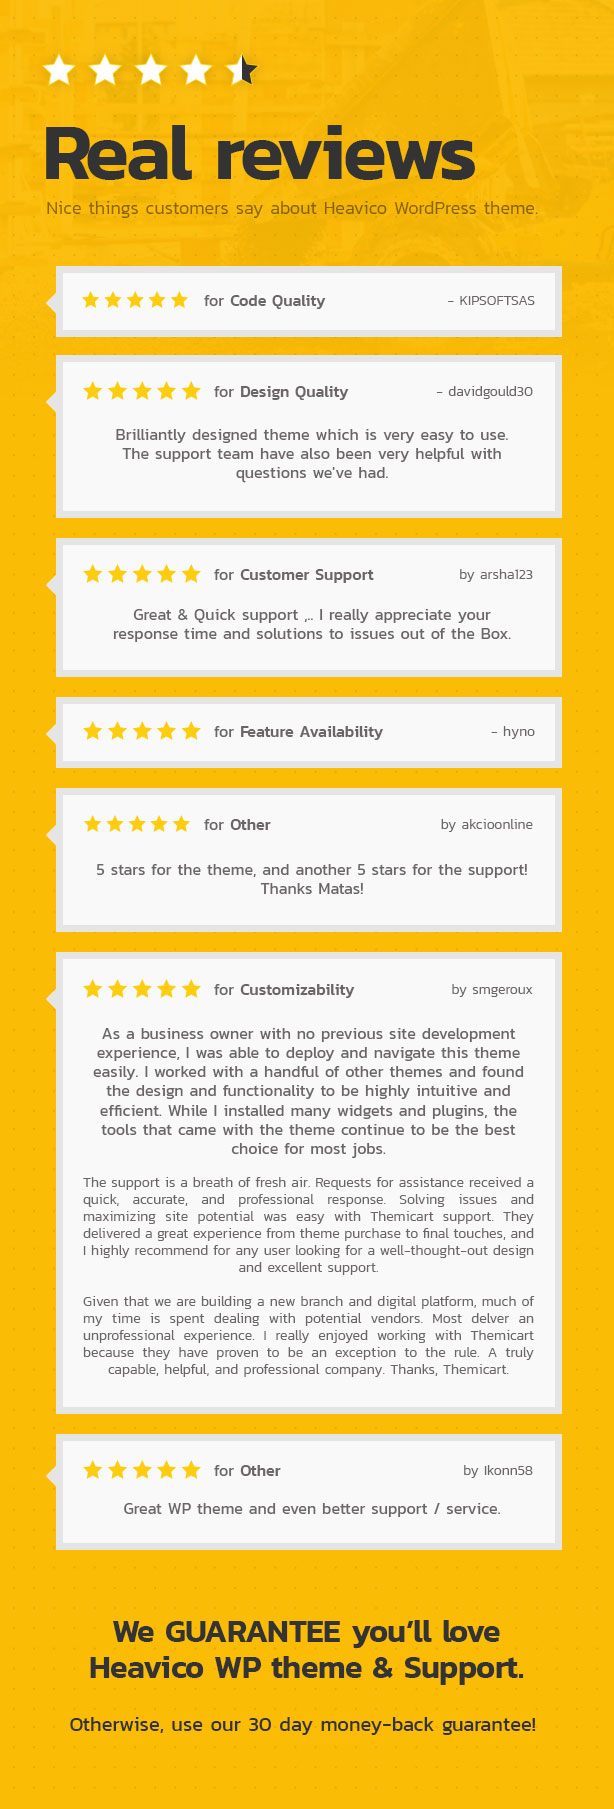 Real reviews by the users.